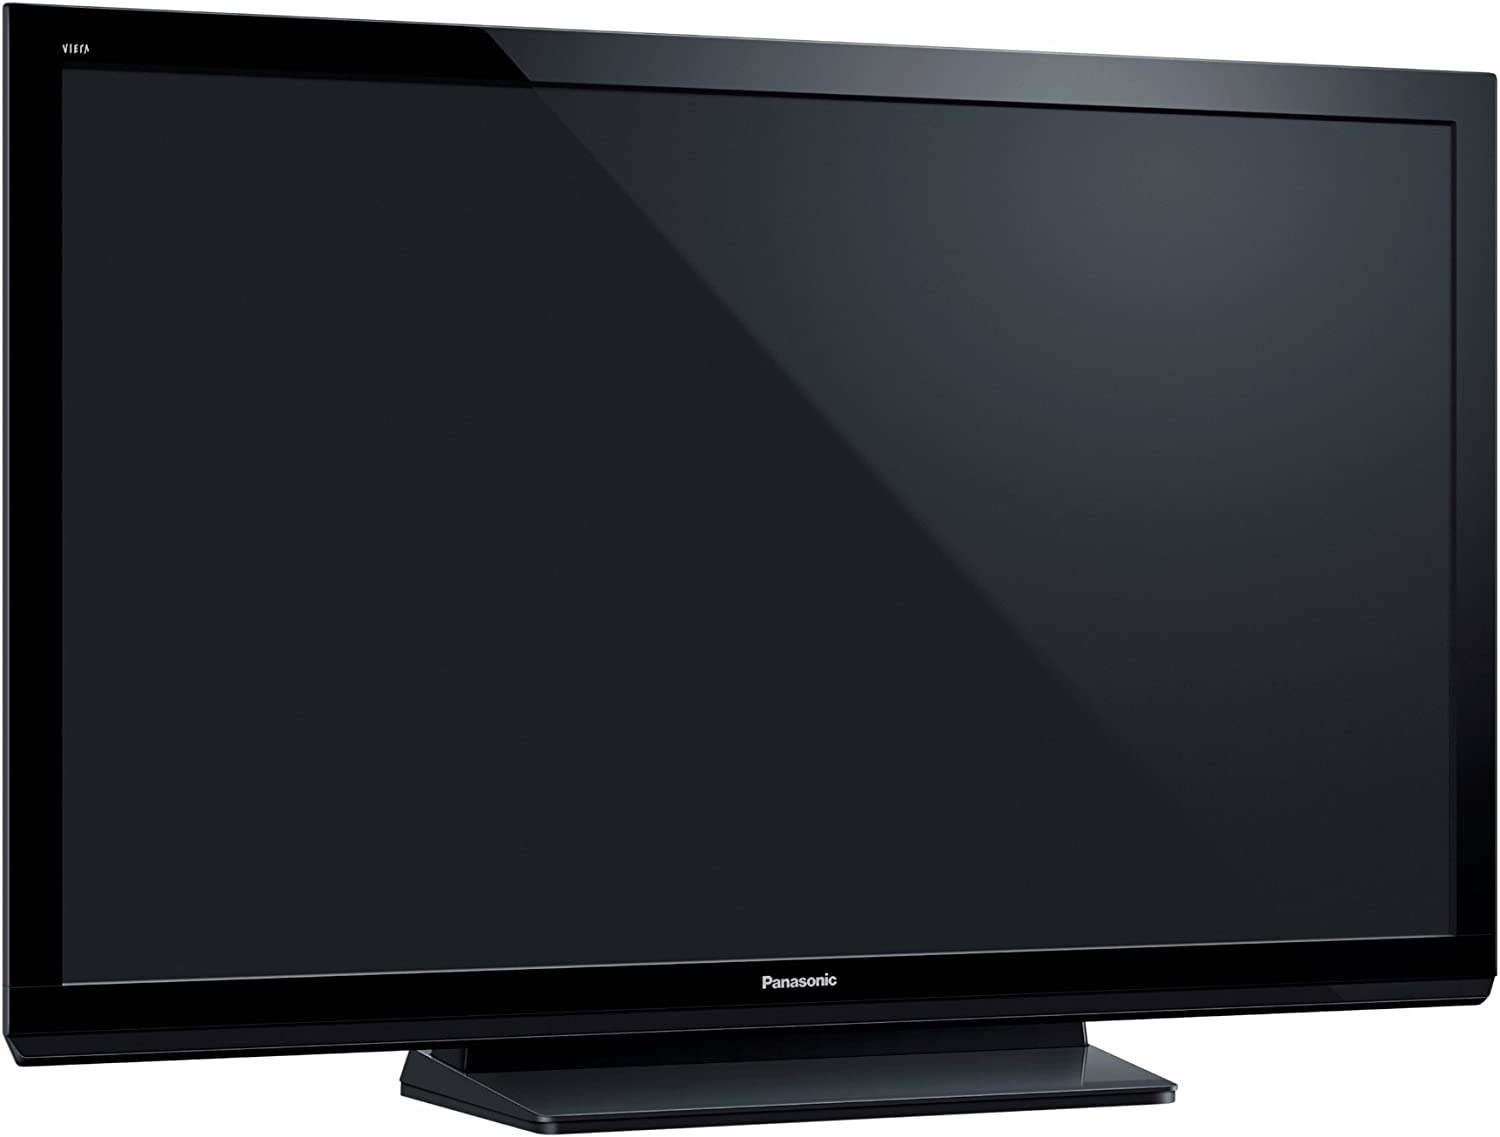 Panasonic TXP42X50E - Televisor de plasma de 42 pulgadas (HD Ready, 600Hz, TDT HD, USB Multimedia): Amazon.es: Electrónica